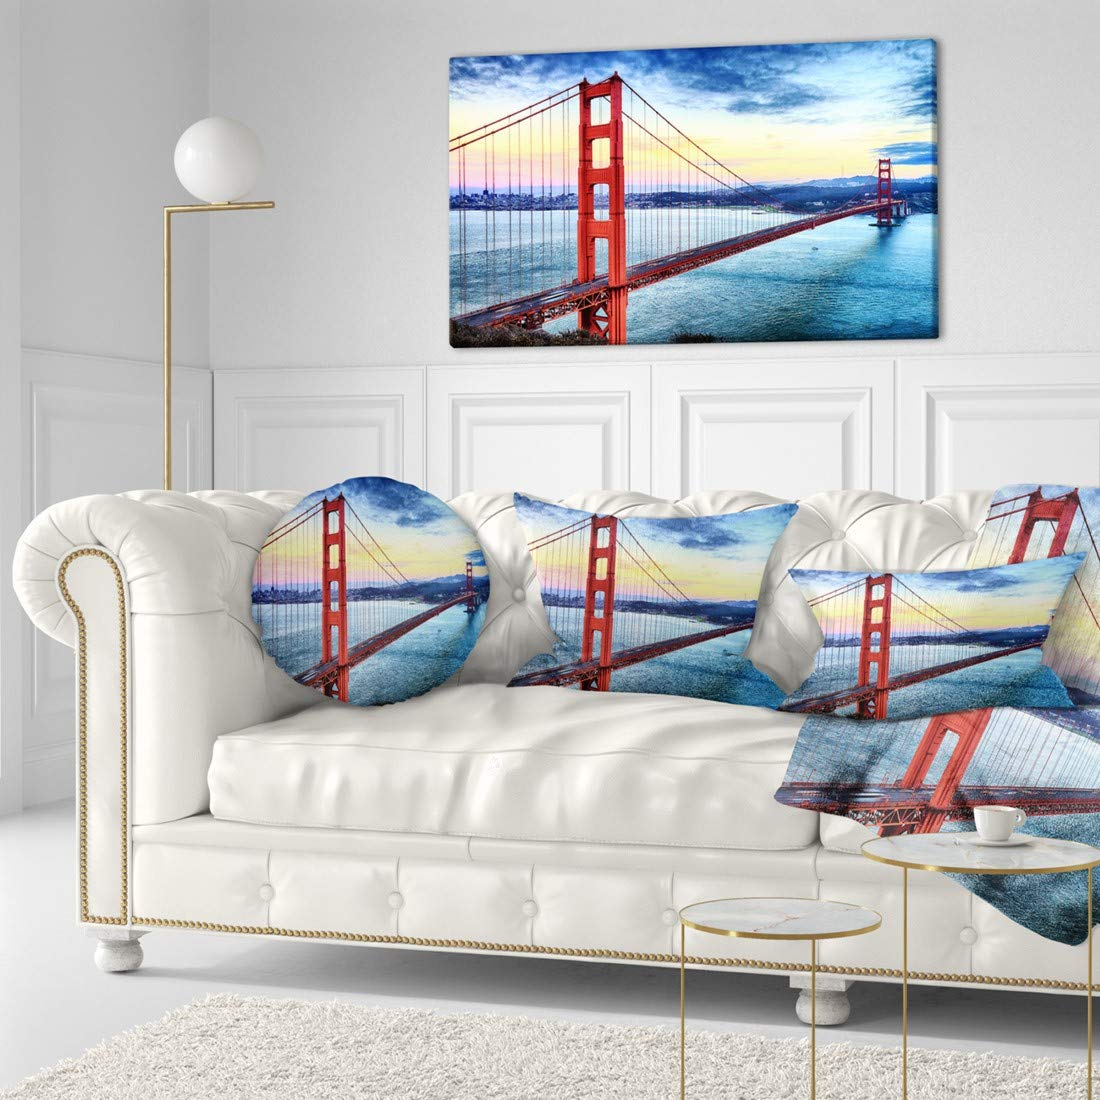 Design Art Pt10043 40 20 Golden Gate Bridge In San Francisco Sea Bridge Canvas Wall Artwork 40x20 Blue Amazon In Home Kitchen